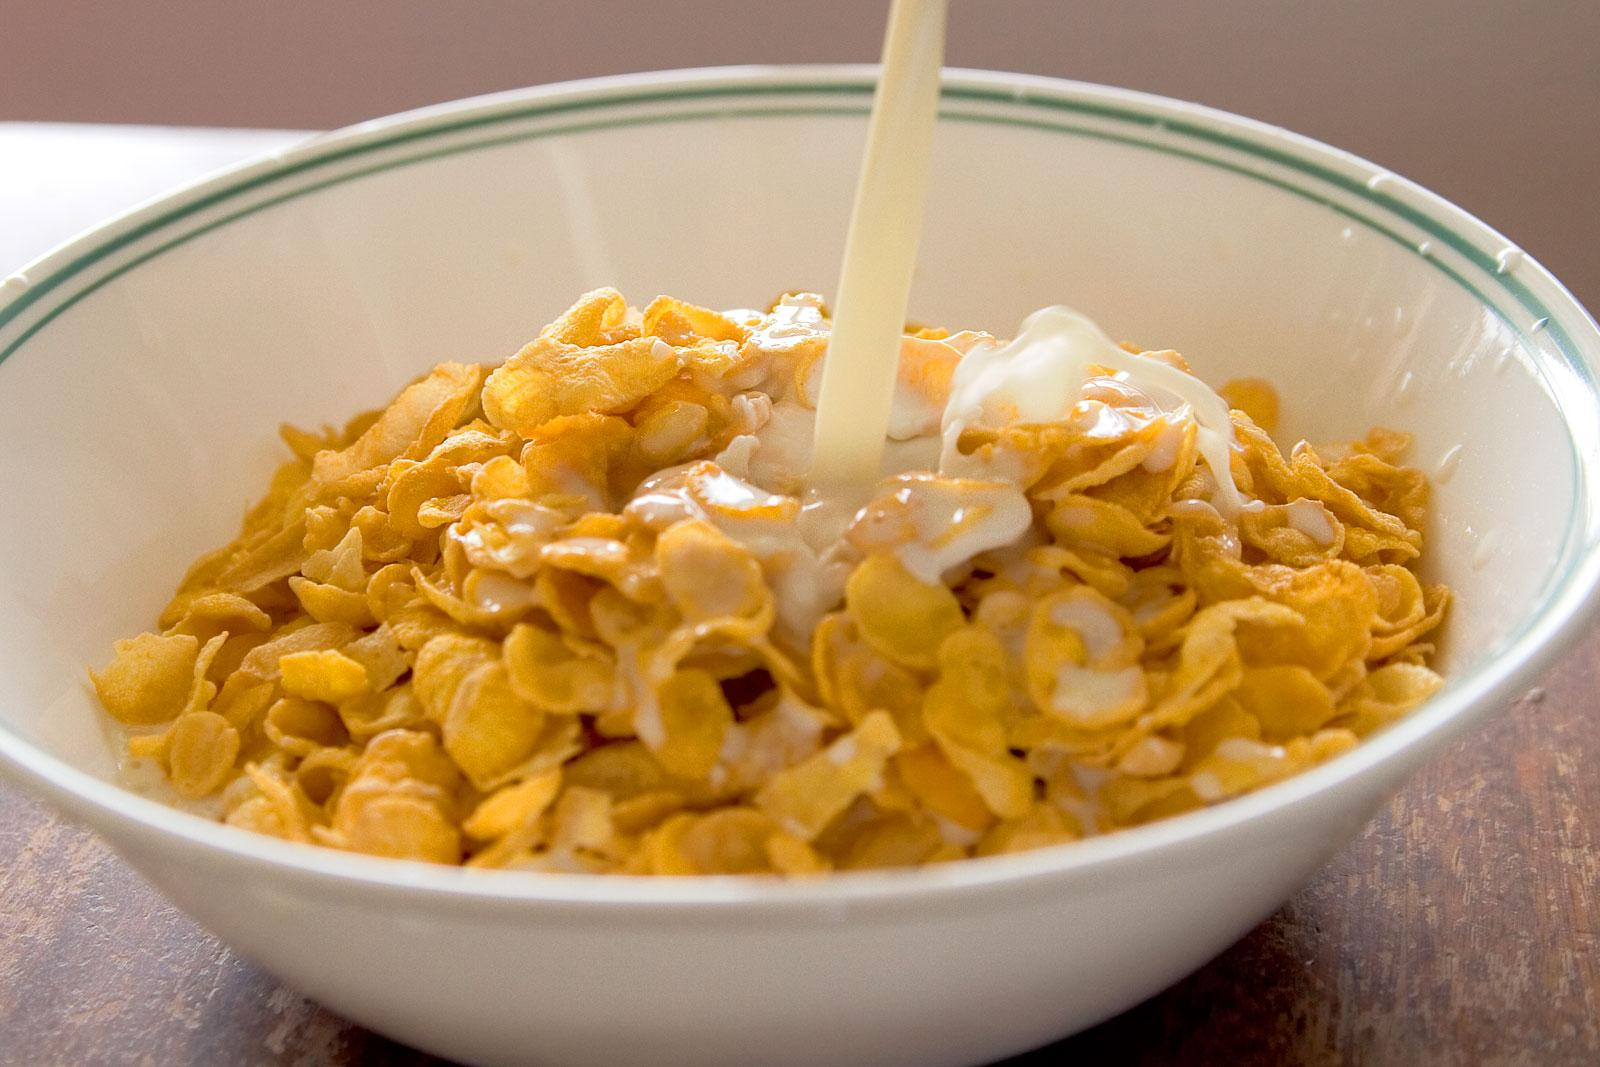 https://upload.wikimedia.org/wikipedia/commons/7/7f/Cornflakes_with_milk_pouring_in.jpg